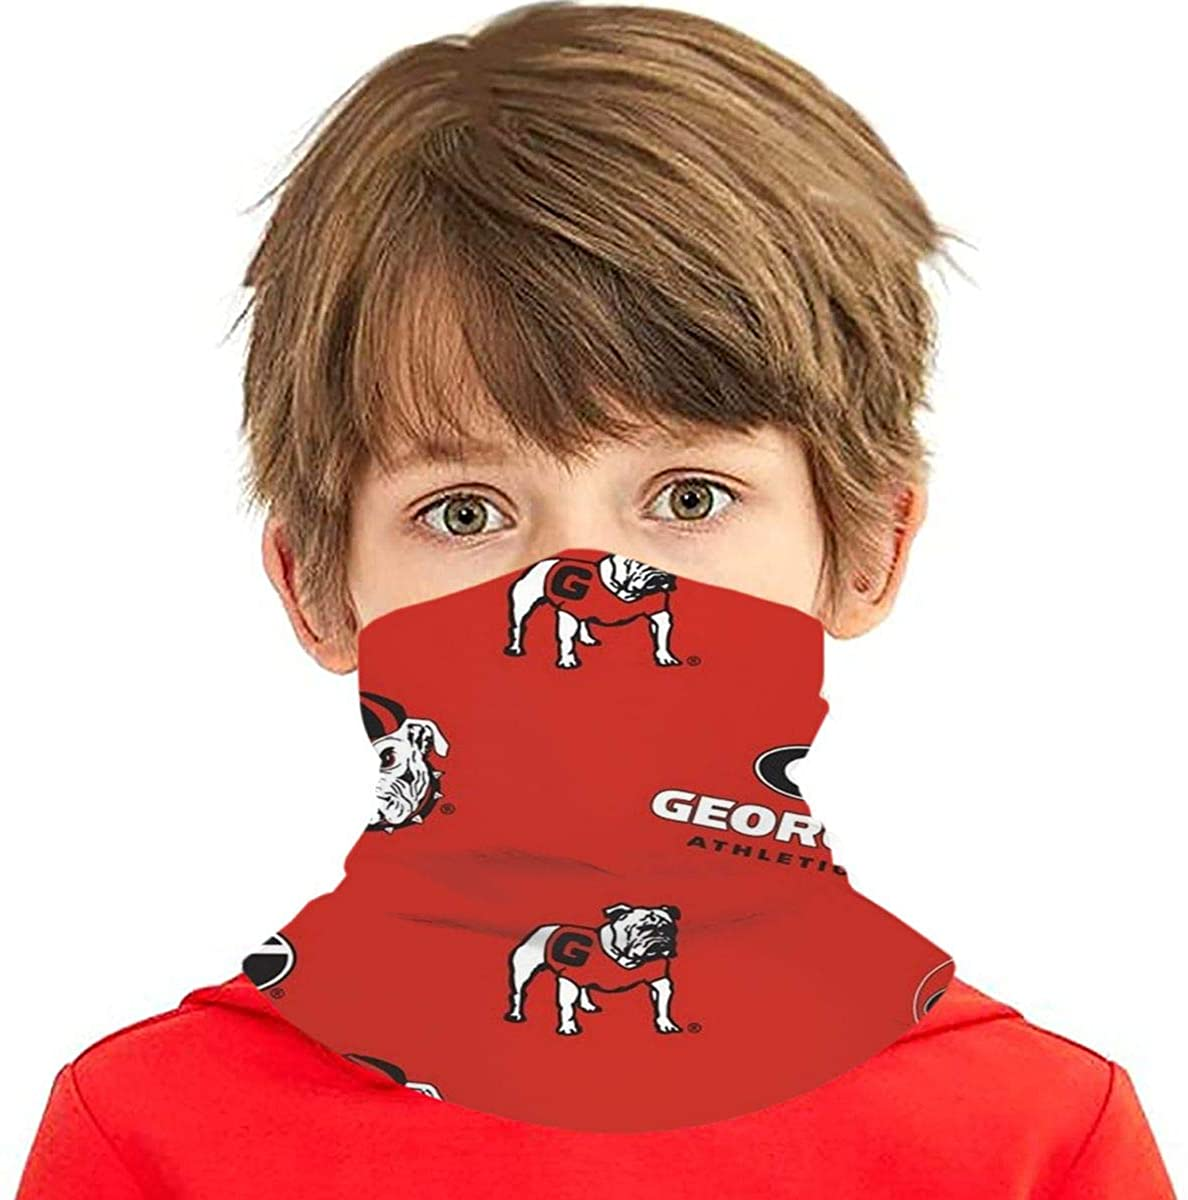 Unisex Kid Face Mask Georgia Bulldogs Muti-Style Headband Bandanas Mouth Cover Neck Gaiter Children Outdoor Dustproof Magical Multi-Function for Cycling Travel Girls Boys Gift